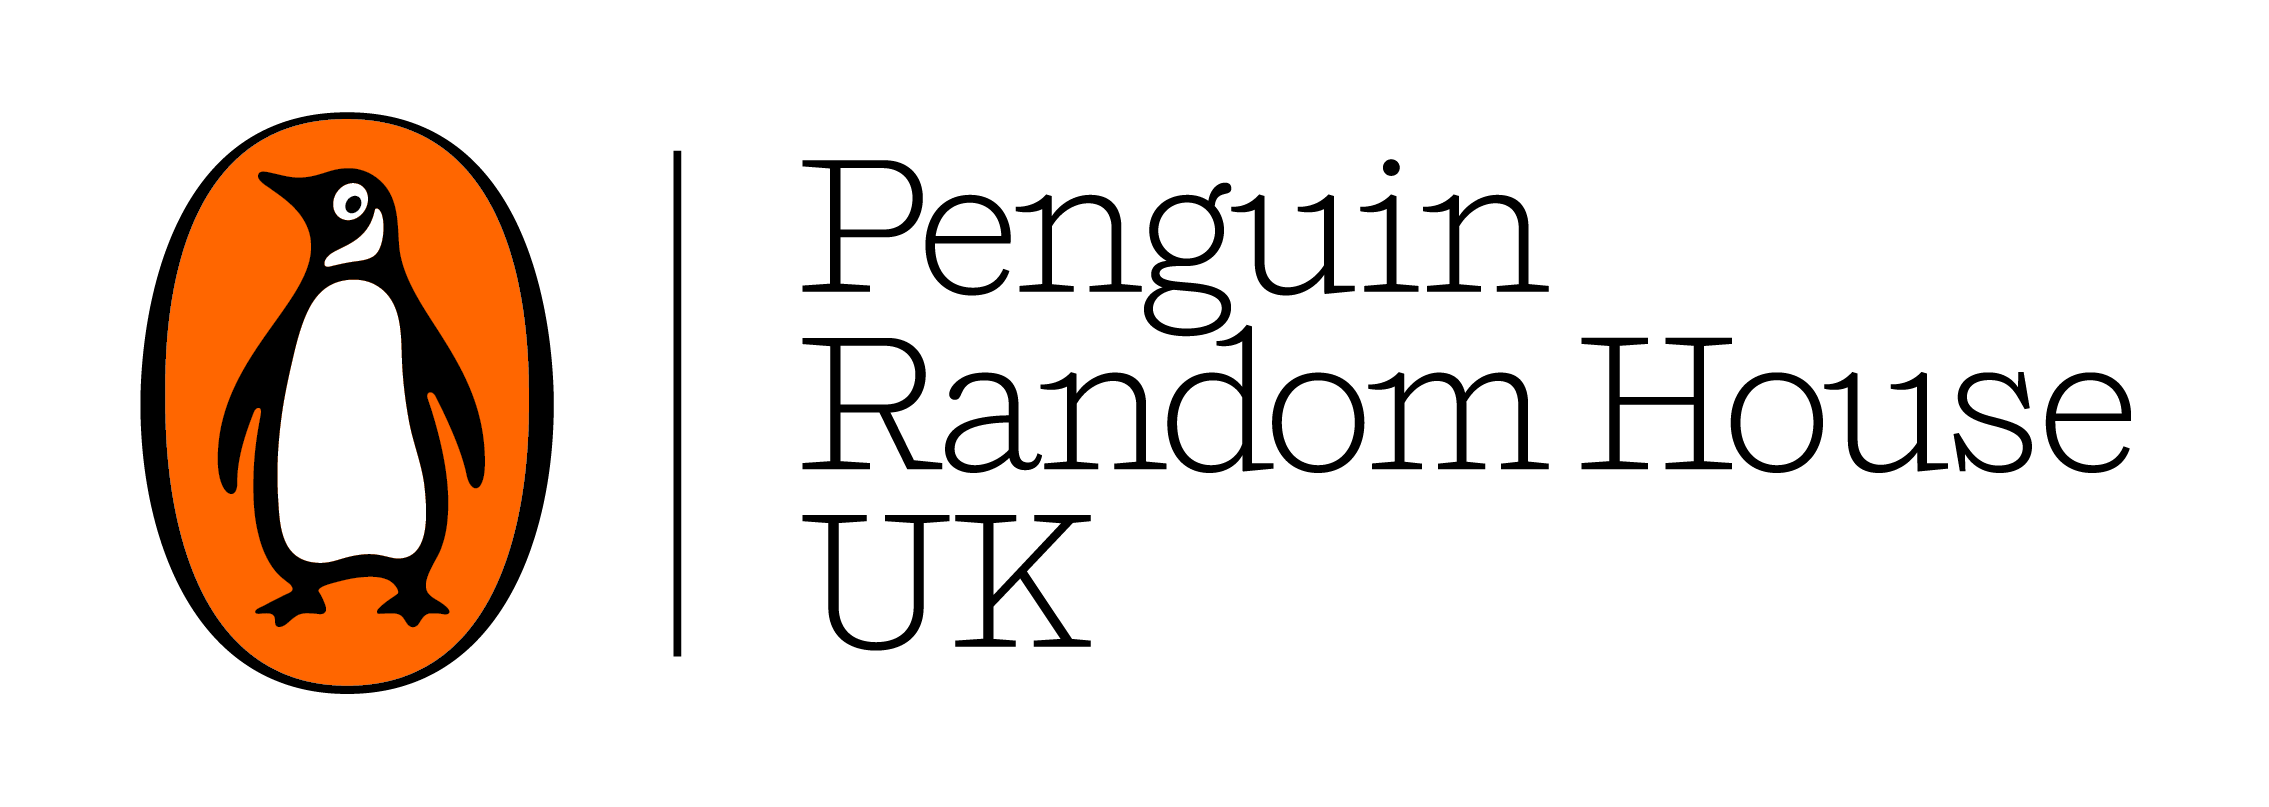 Penguin books logo png. Random house uk launches